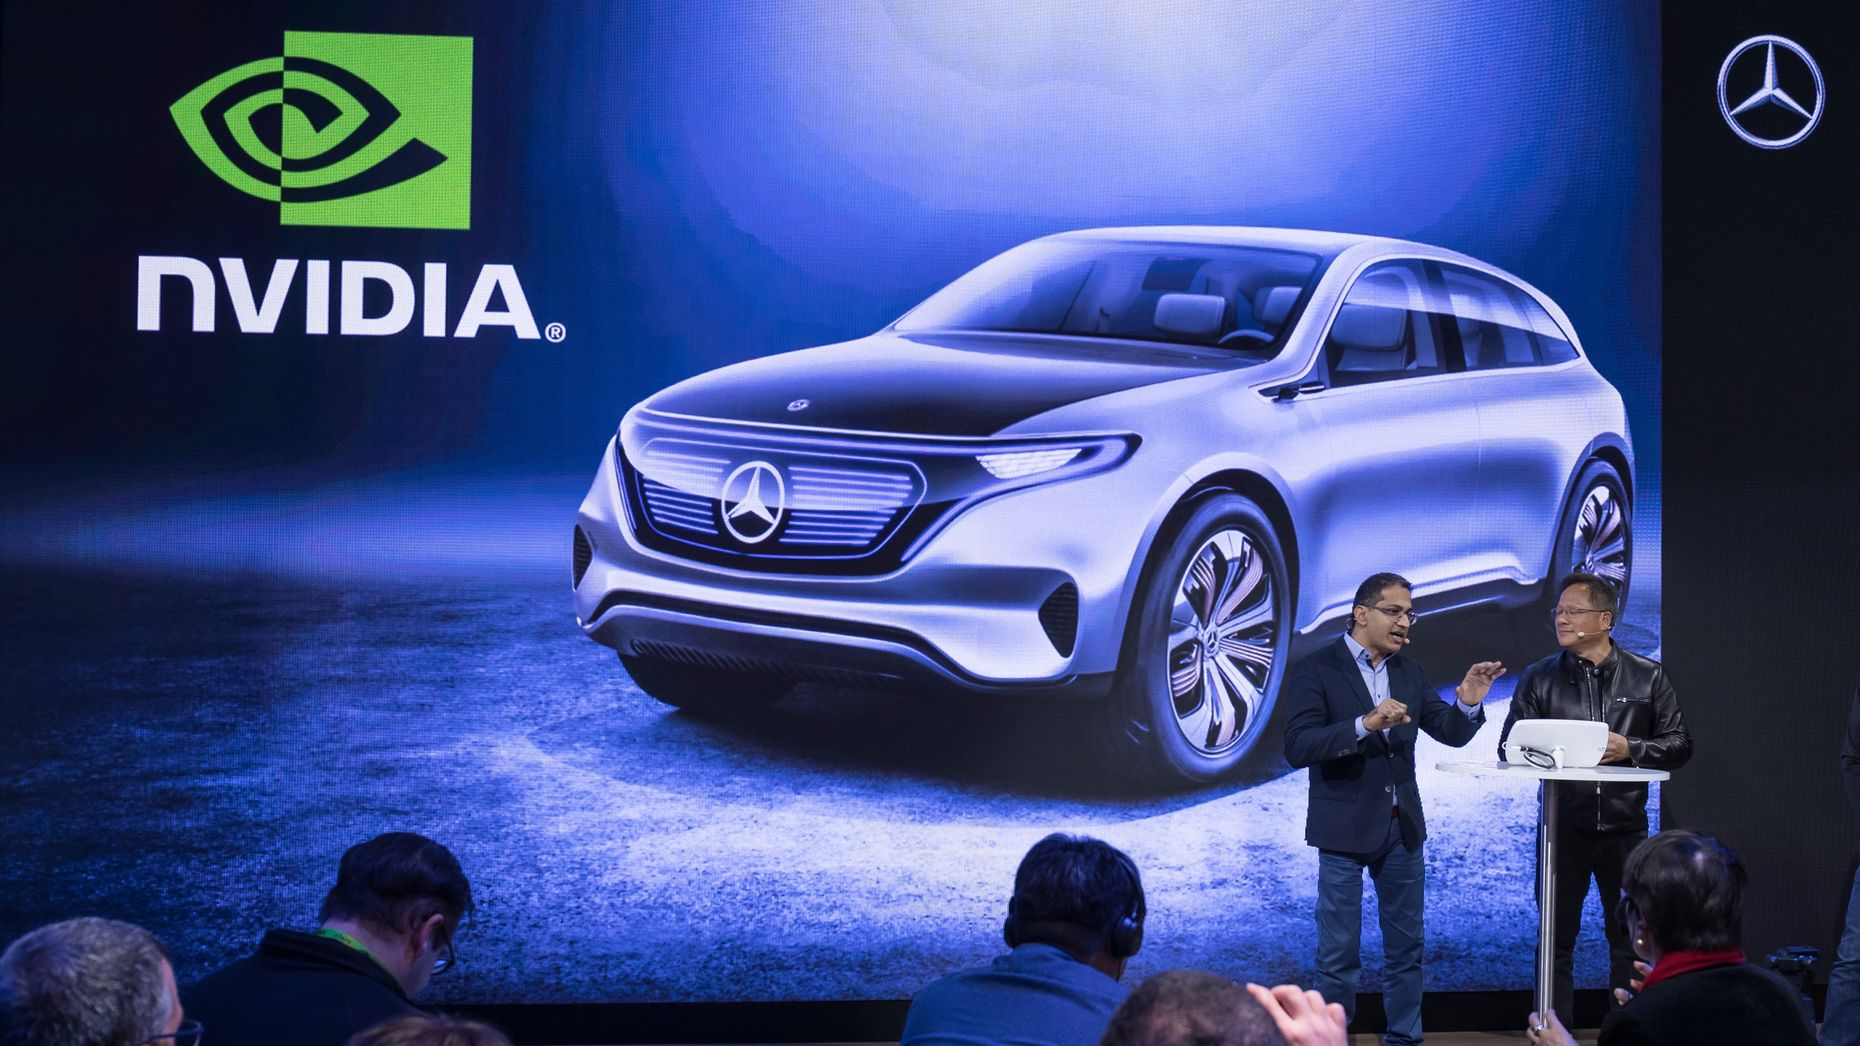 Nvidia CEO Jen-Hsun Huang (right) and Sajjad Khan, VP of digital vehicle at Mercedes, announce the companies' partnership during CES. Photo by Daimler.